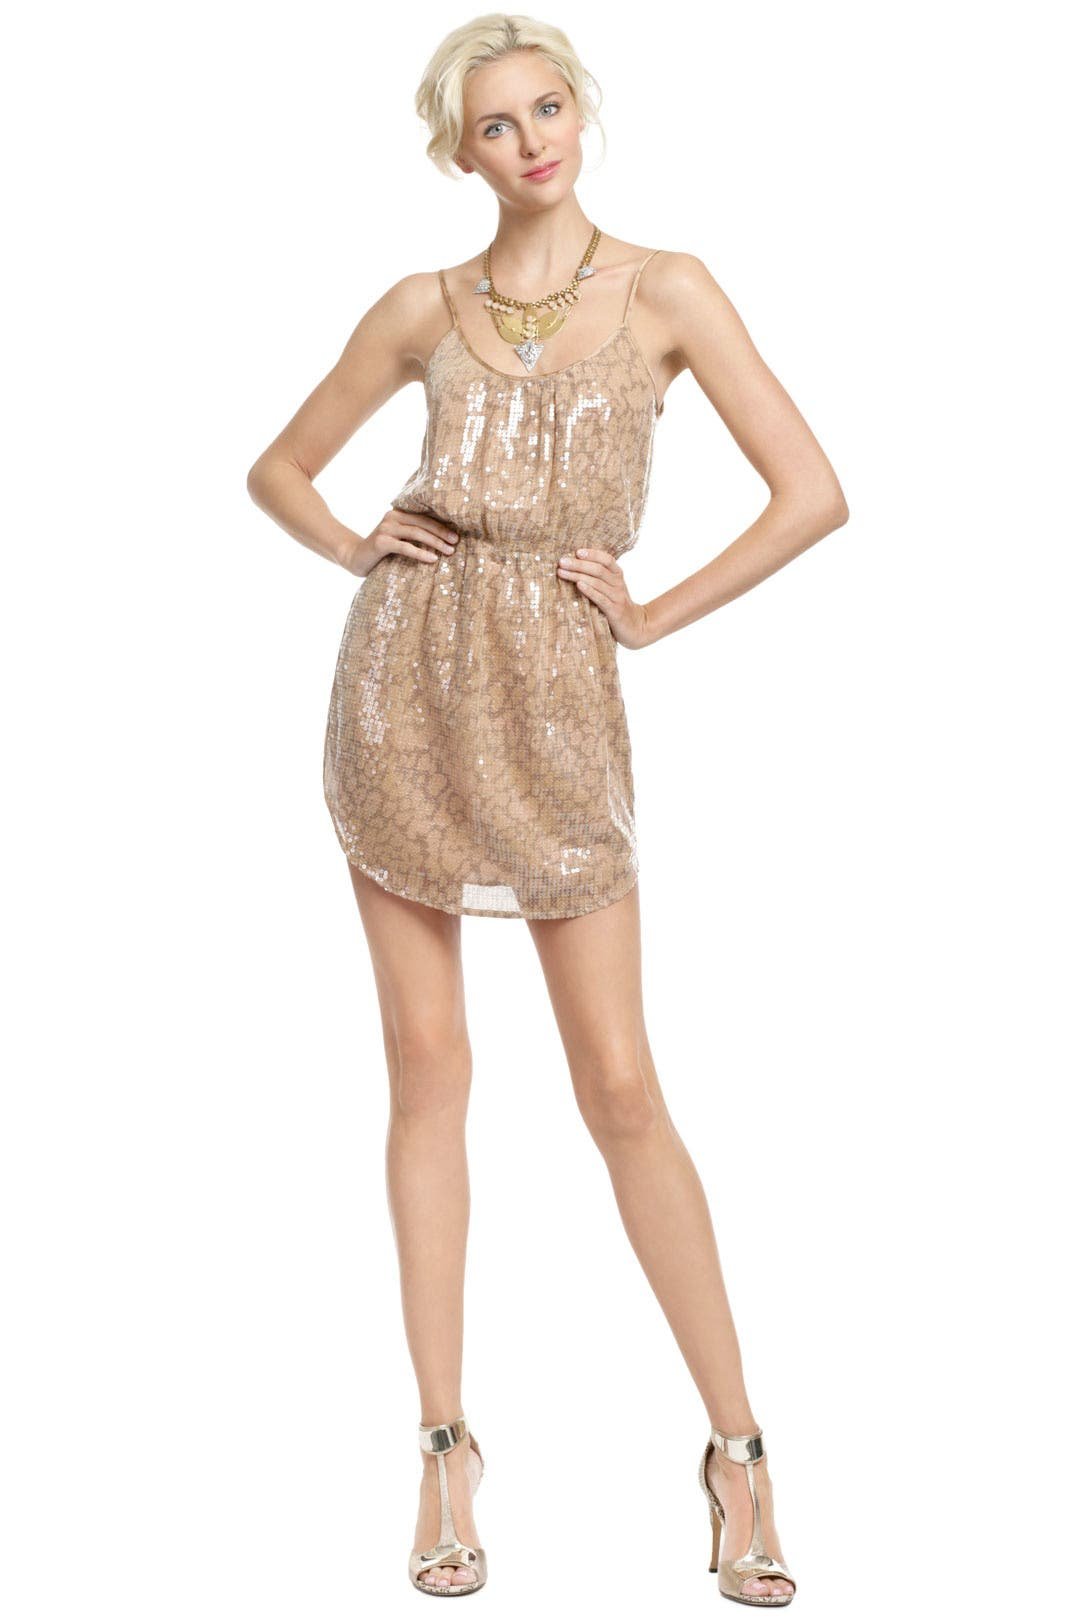 Desert Sequin Sun Dress by Rebecca Taylor for $72 - Rent the Runway